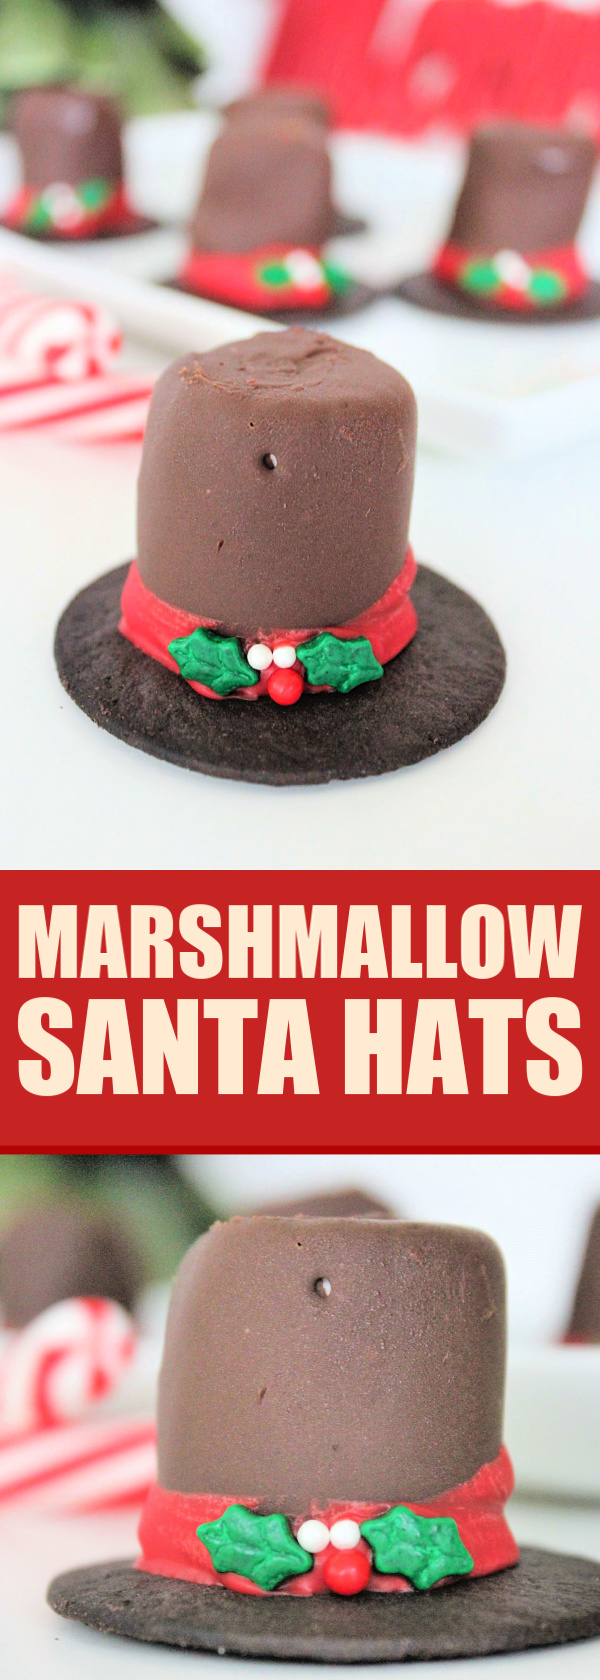 These Marshmallow Frosty Hats are a tasty, seasonal treat that can be eaten alone or serve as adorable cupcake toppers!